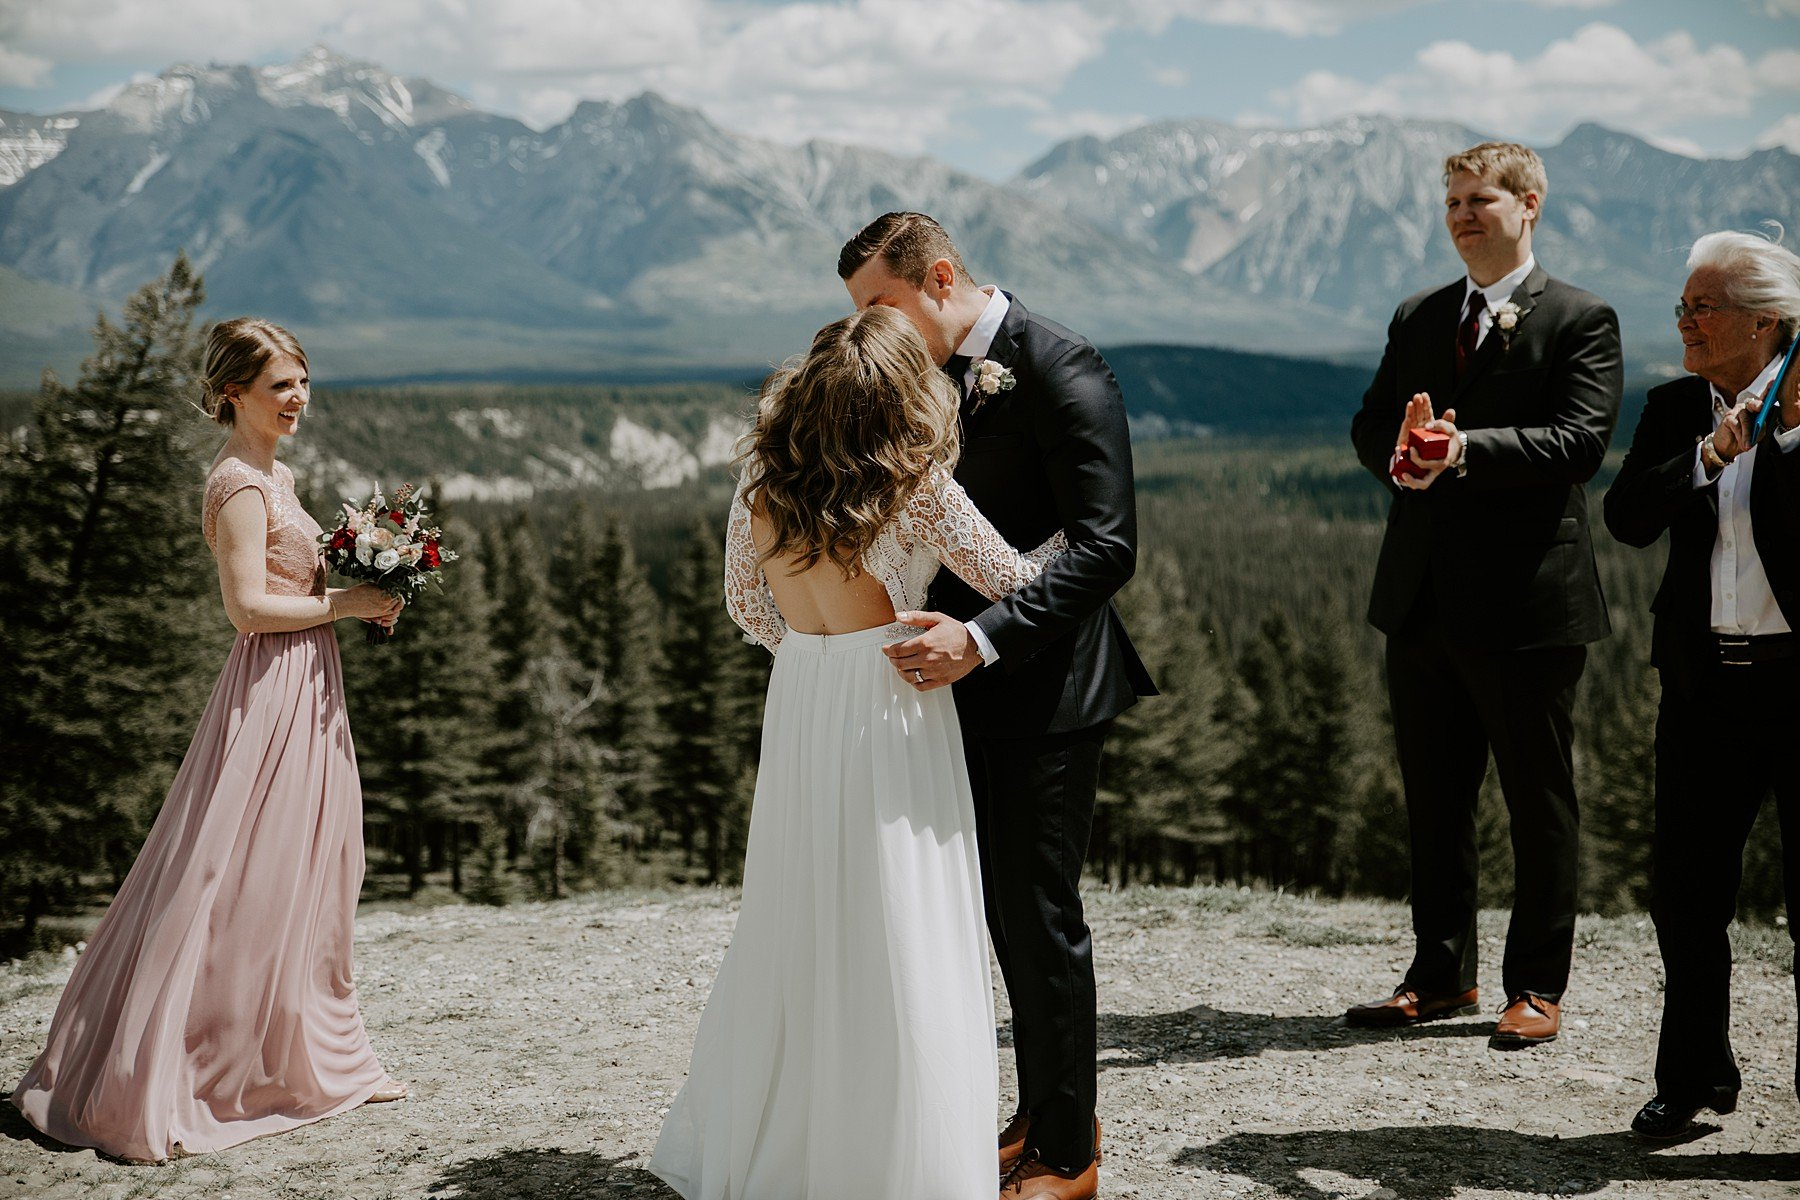 Teller of Tales Photography - Elopement - Tunnel Mountain Banff-50.jpg